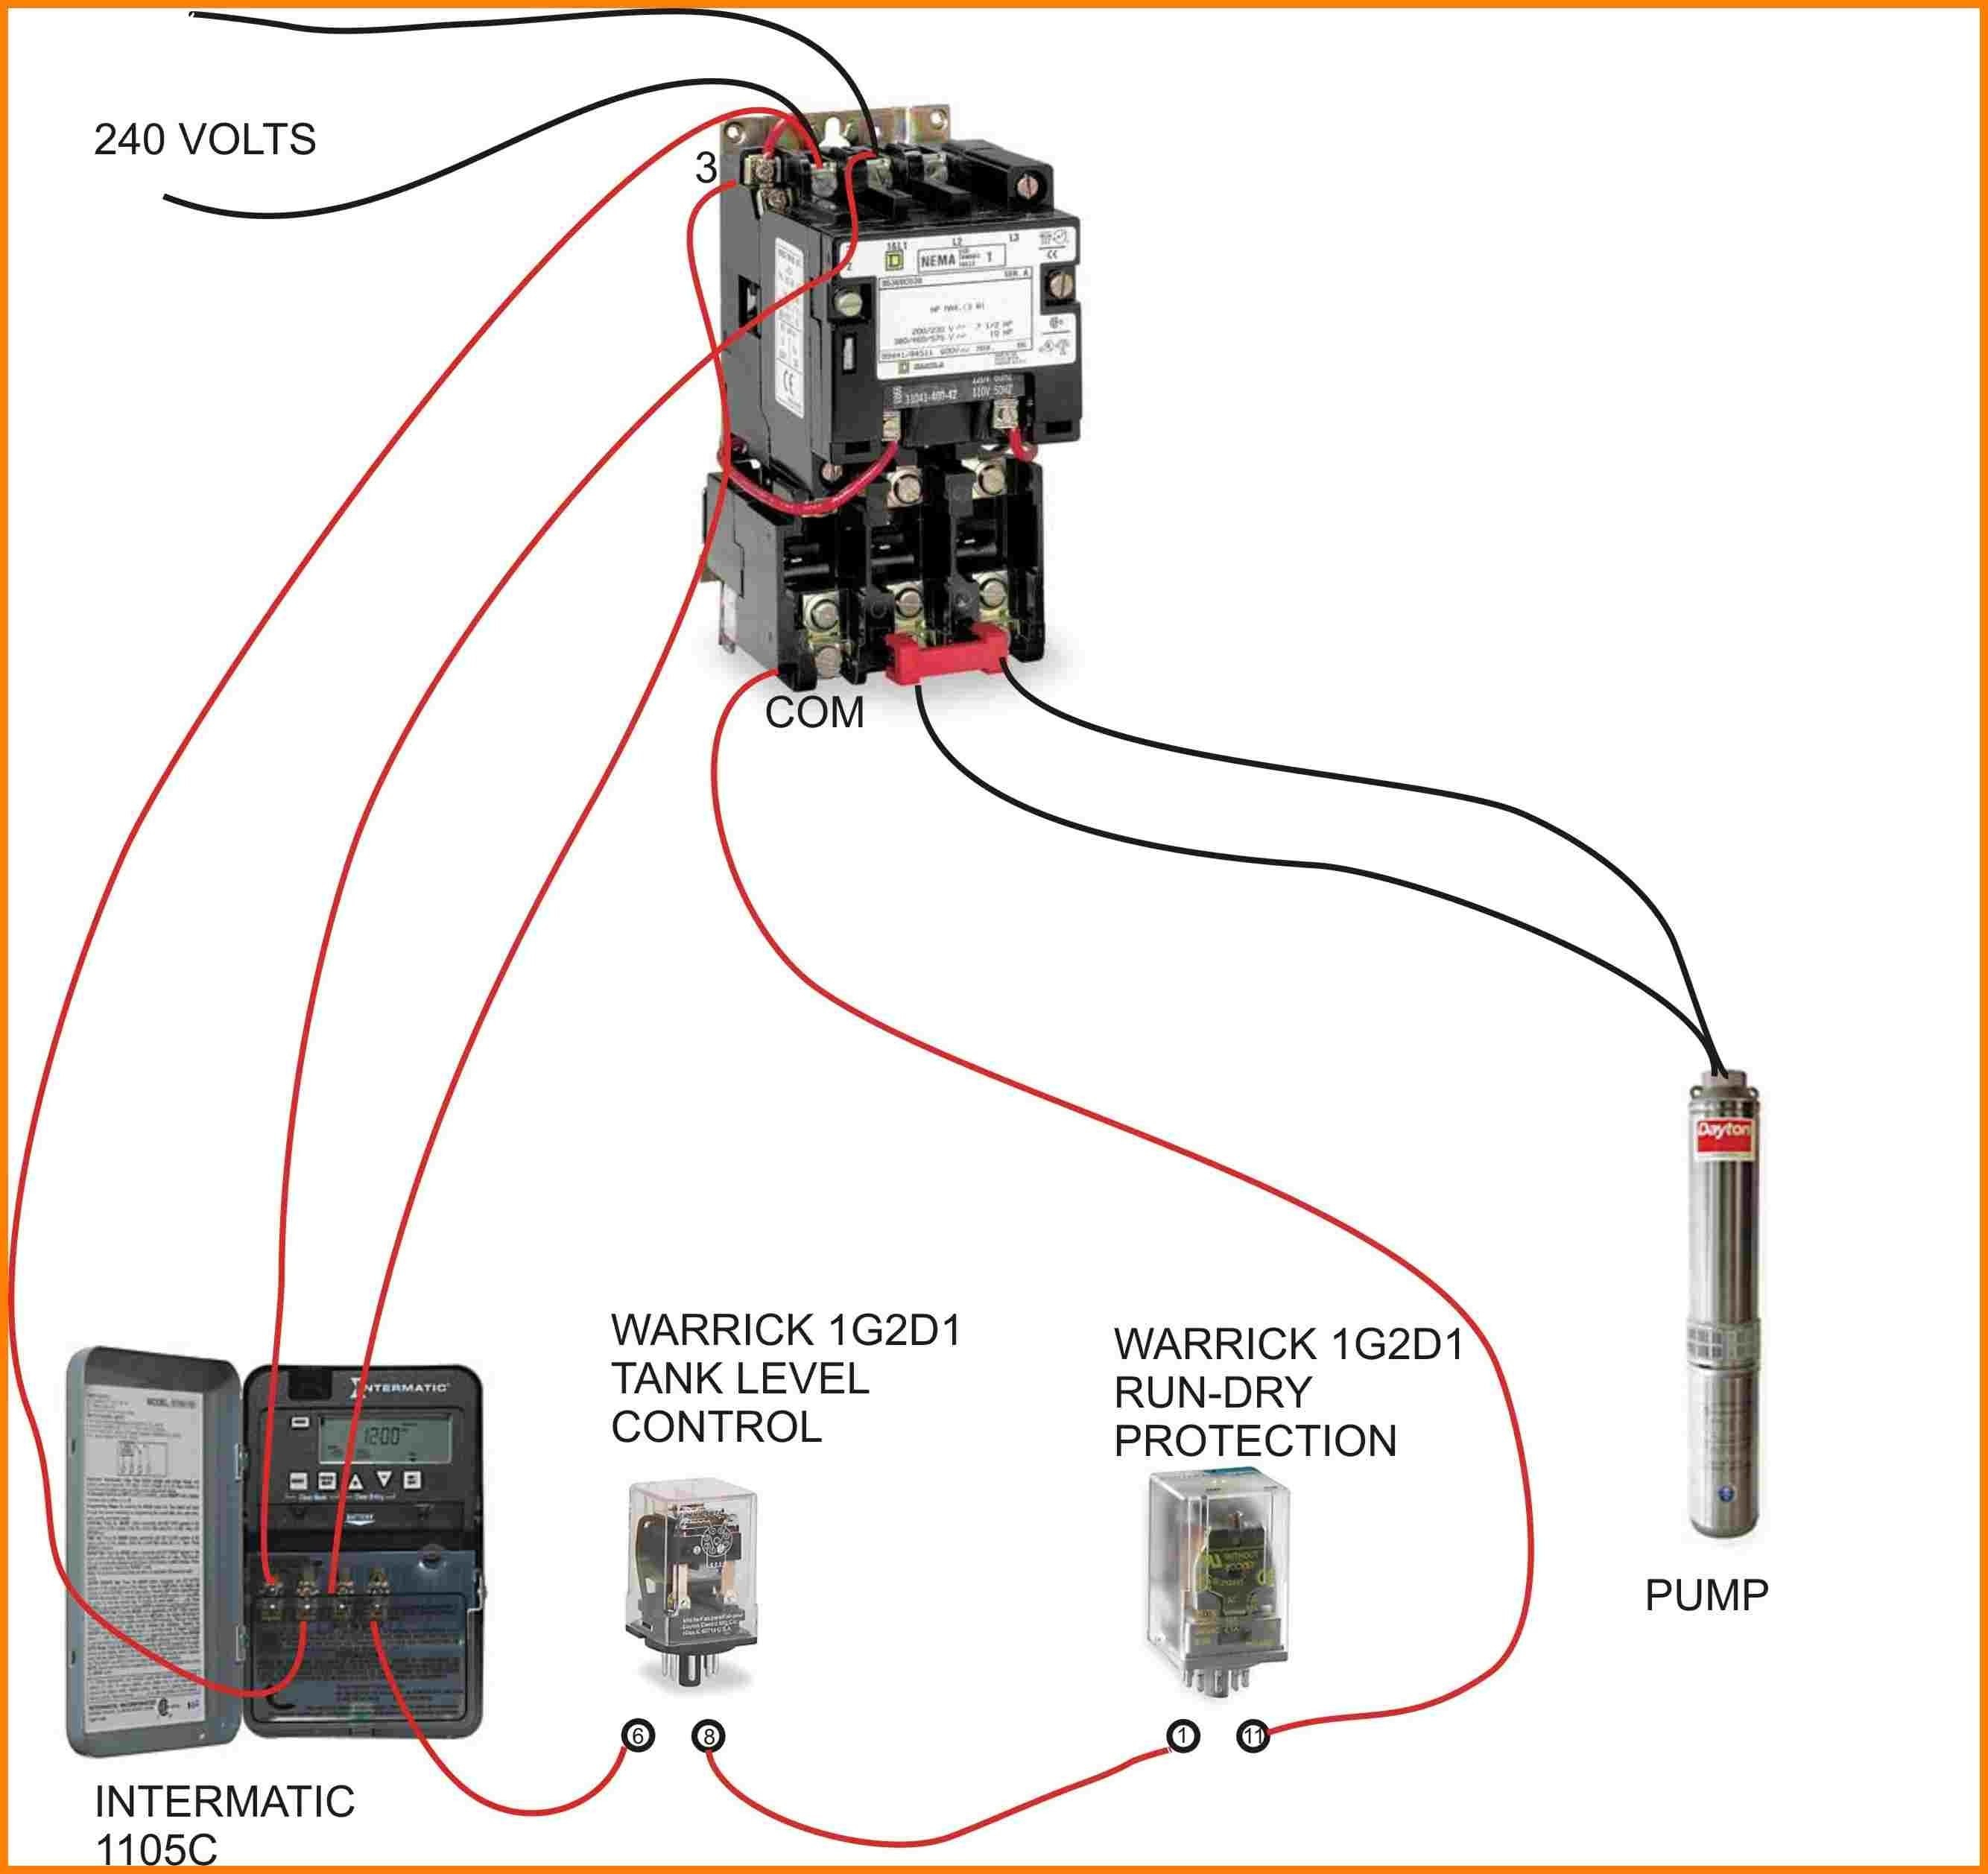 Compressor Contactor Wiring - Wiring Diagram Detailed - 240 Volt Contactor Wiring Diagram